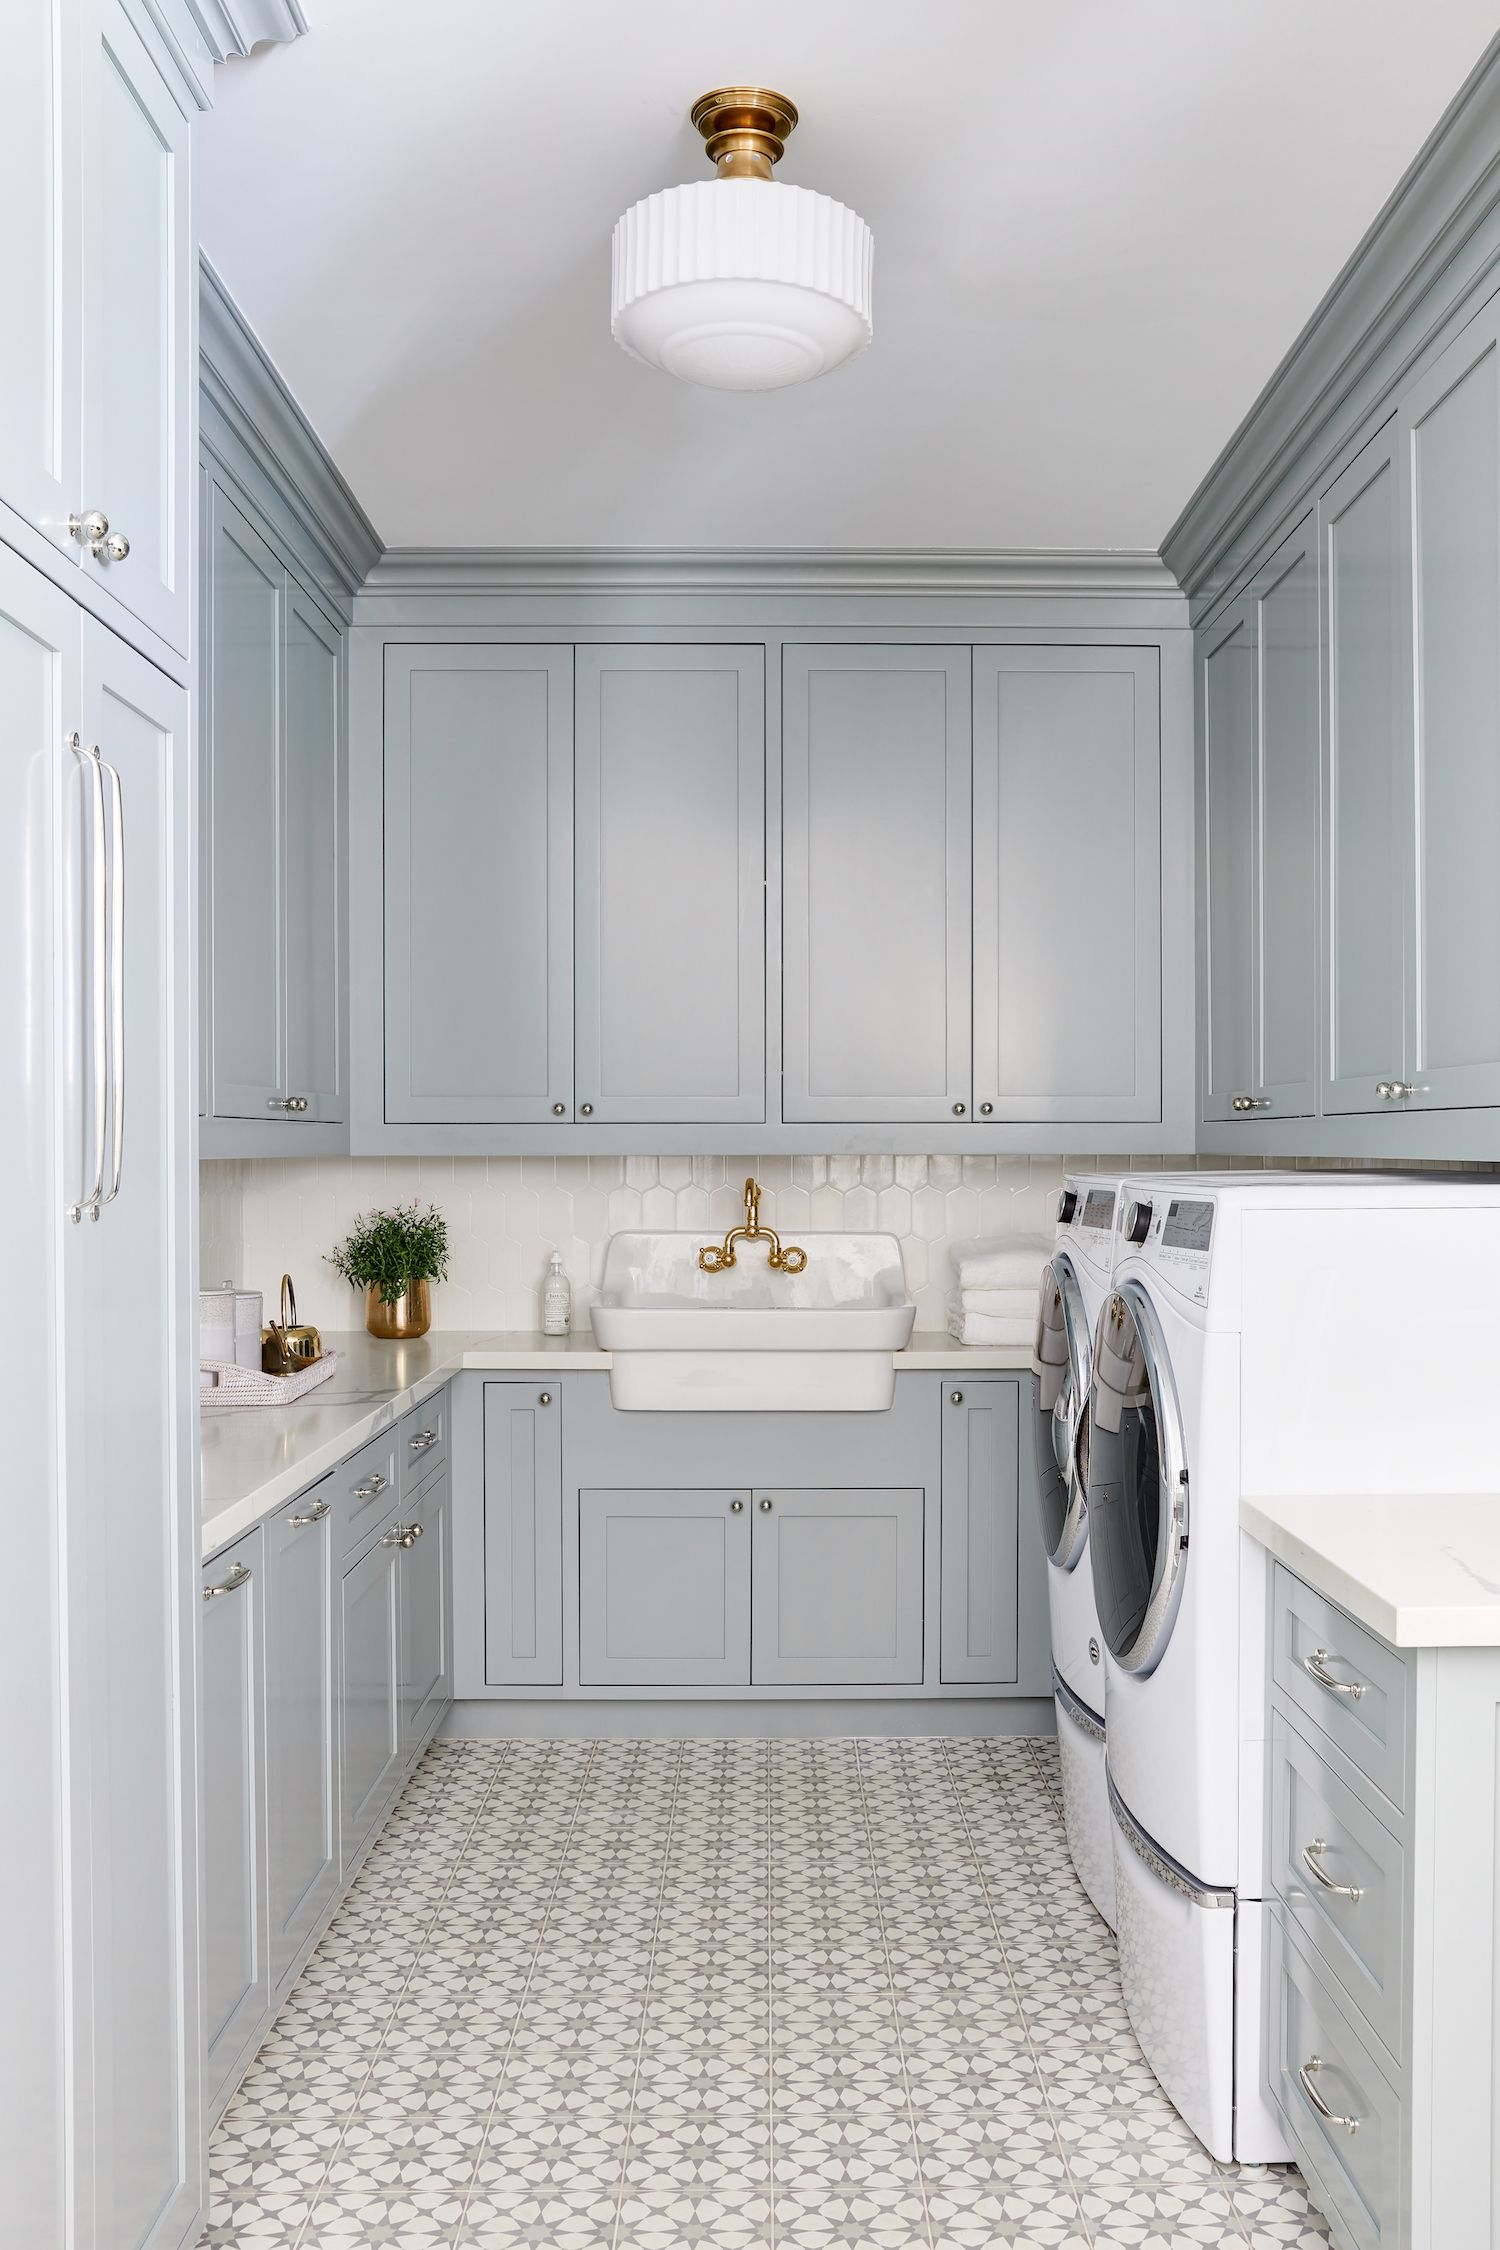 Blue Laundry Room Design by Phoenix Interior Designer Lexi Westergard Design #laundryrooms